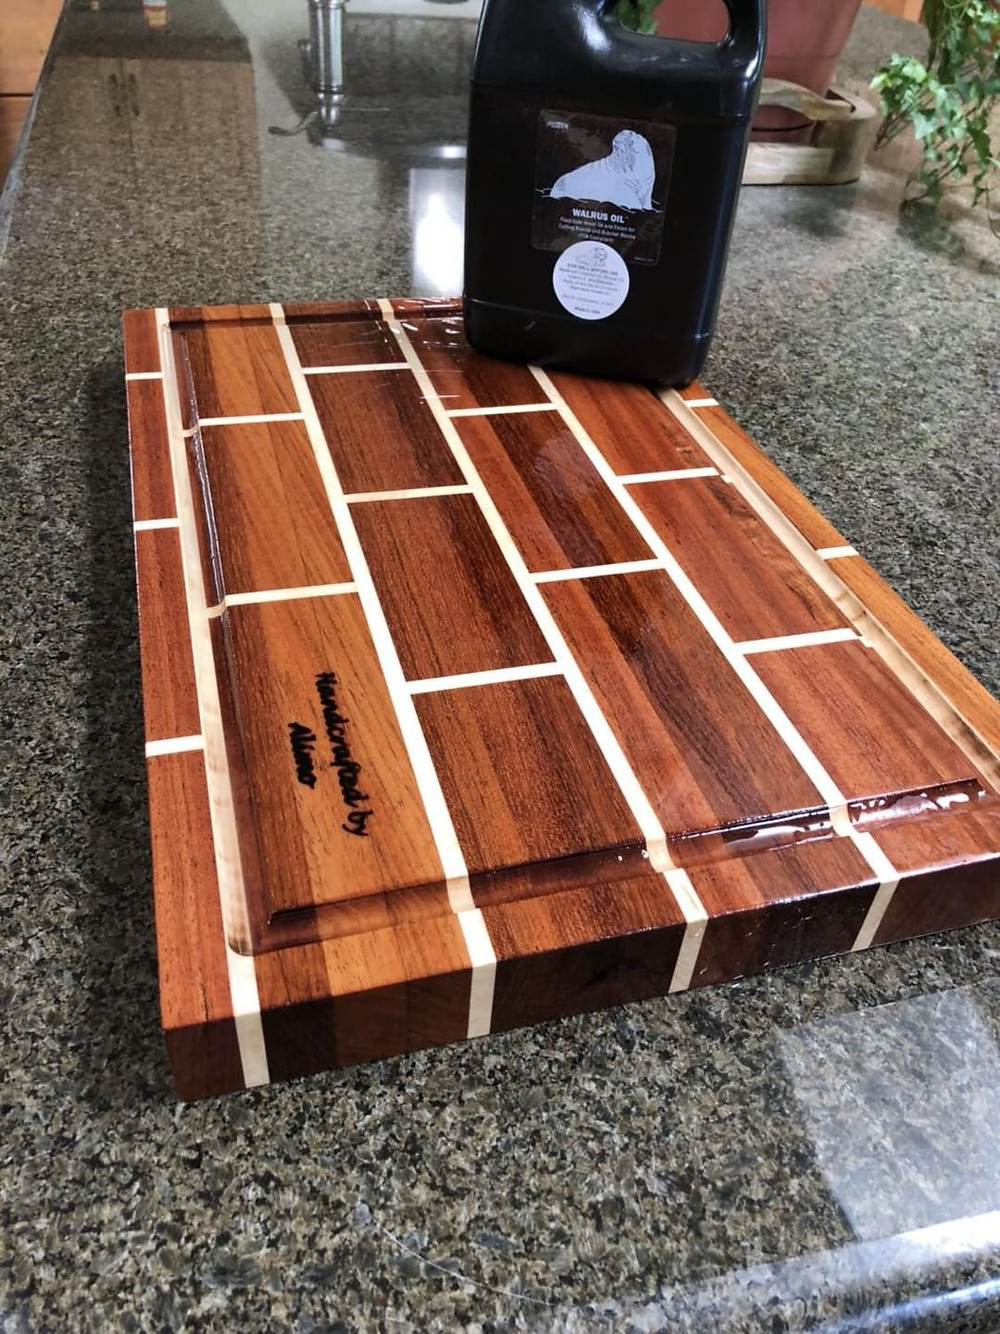 A new Alimo Chopping Block with a fresh coat of Walrus Oill